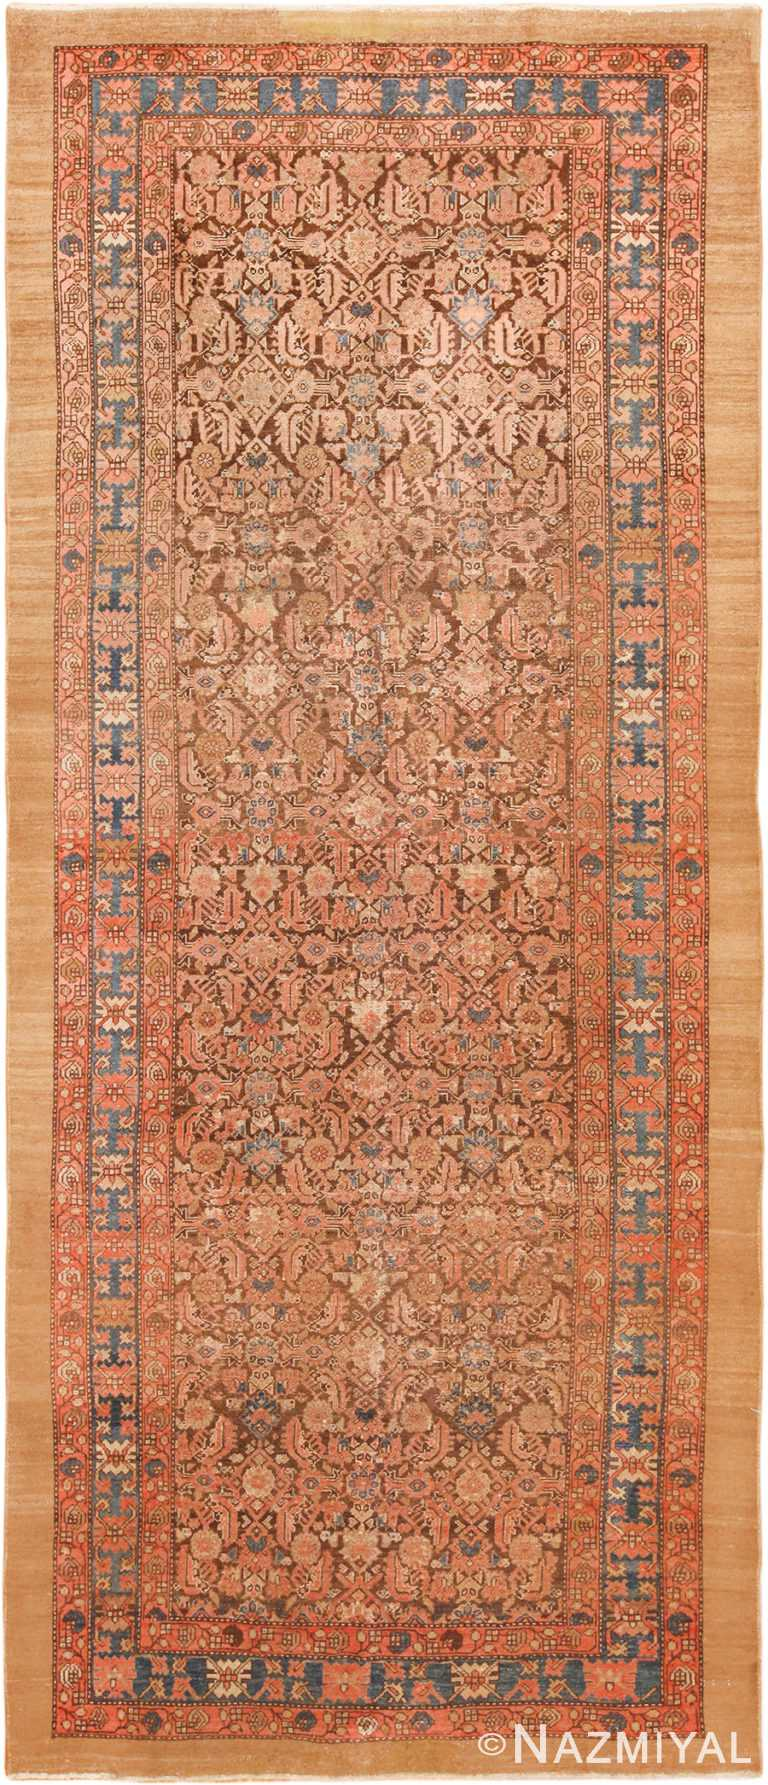 Antique Serab Persian Rug 70294 by Nazmiyal NYC